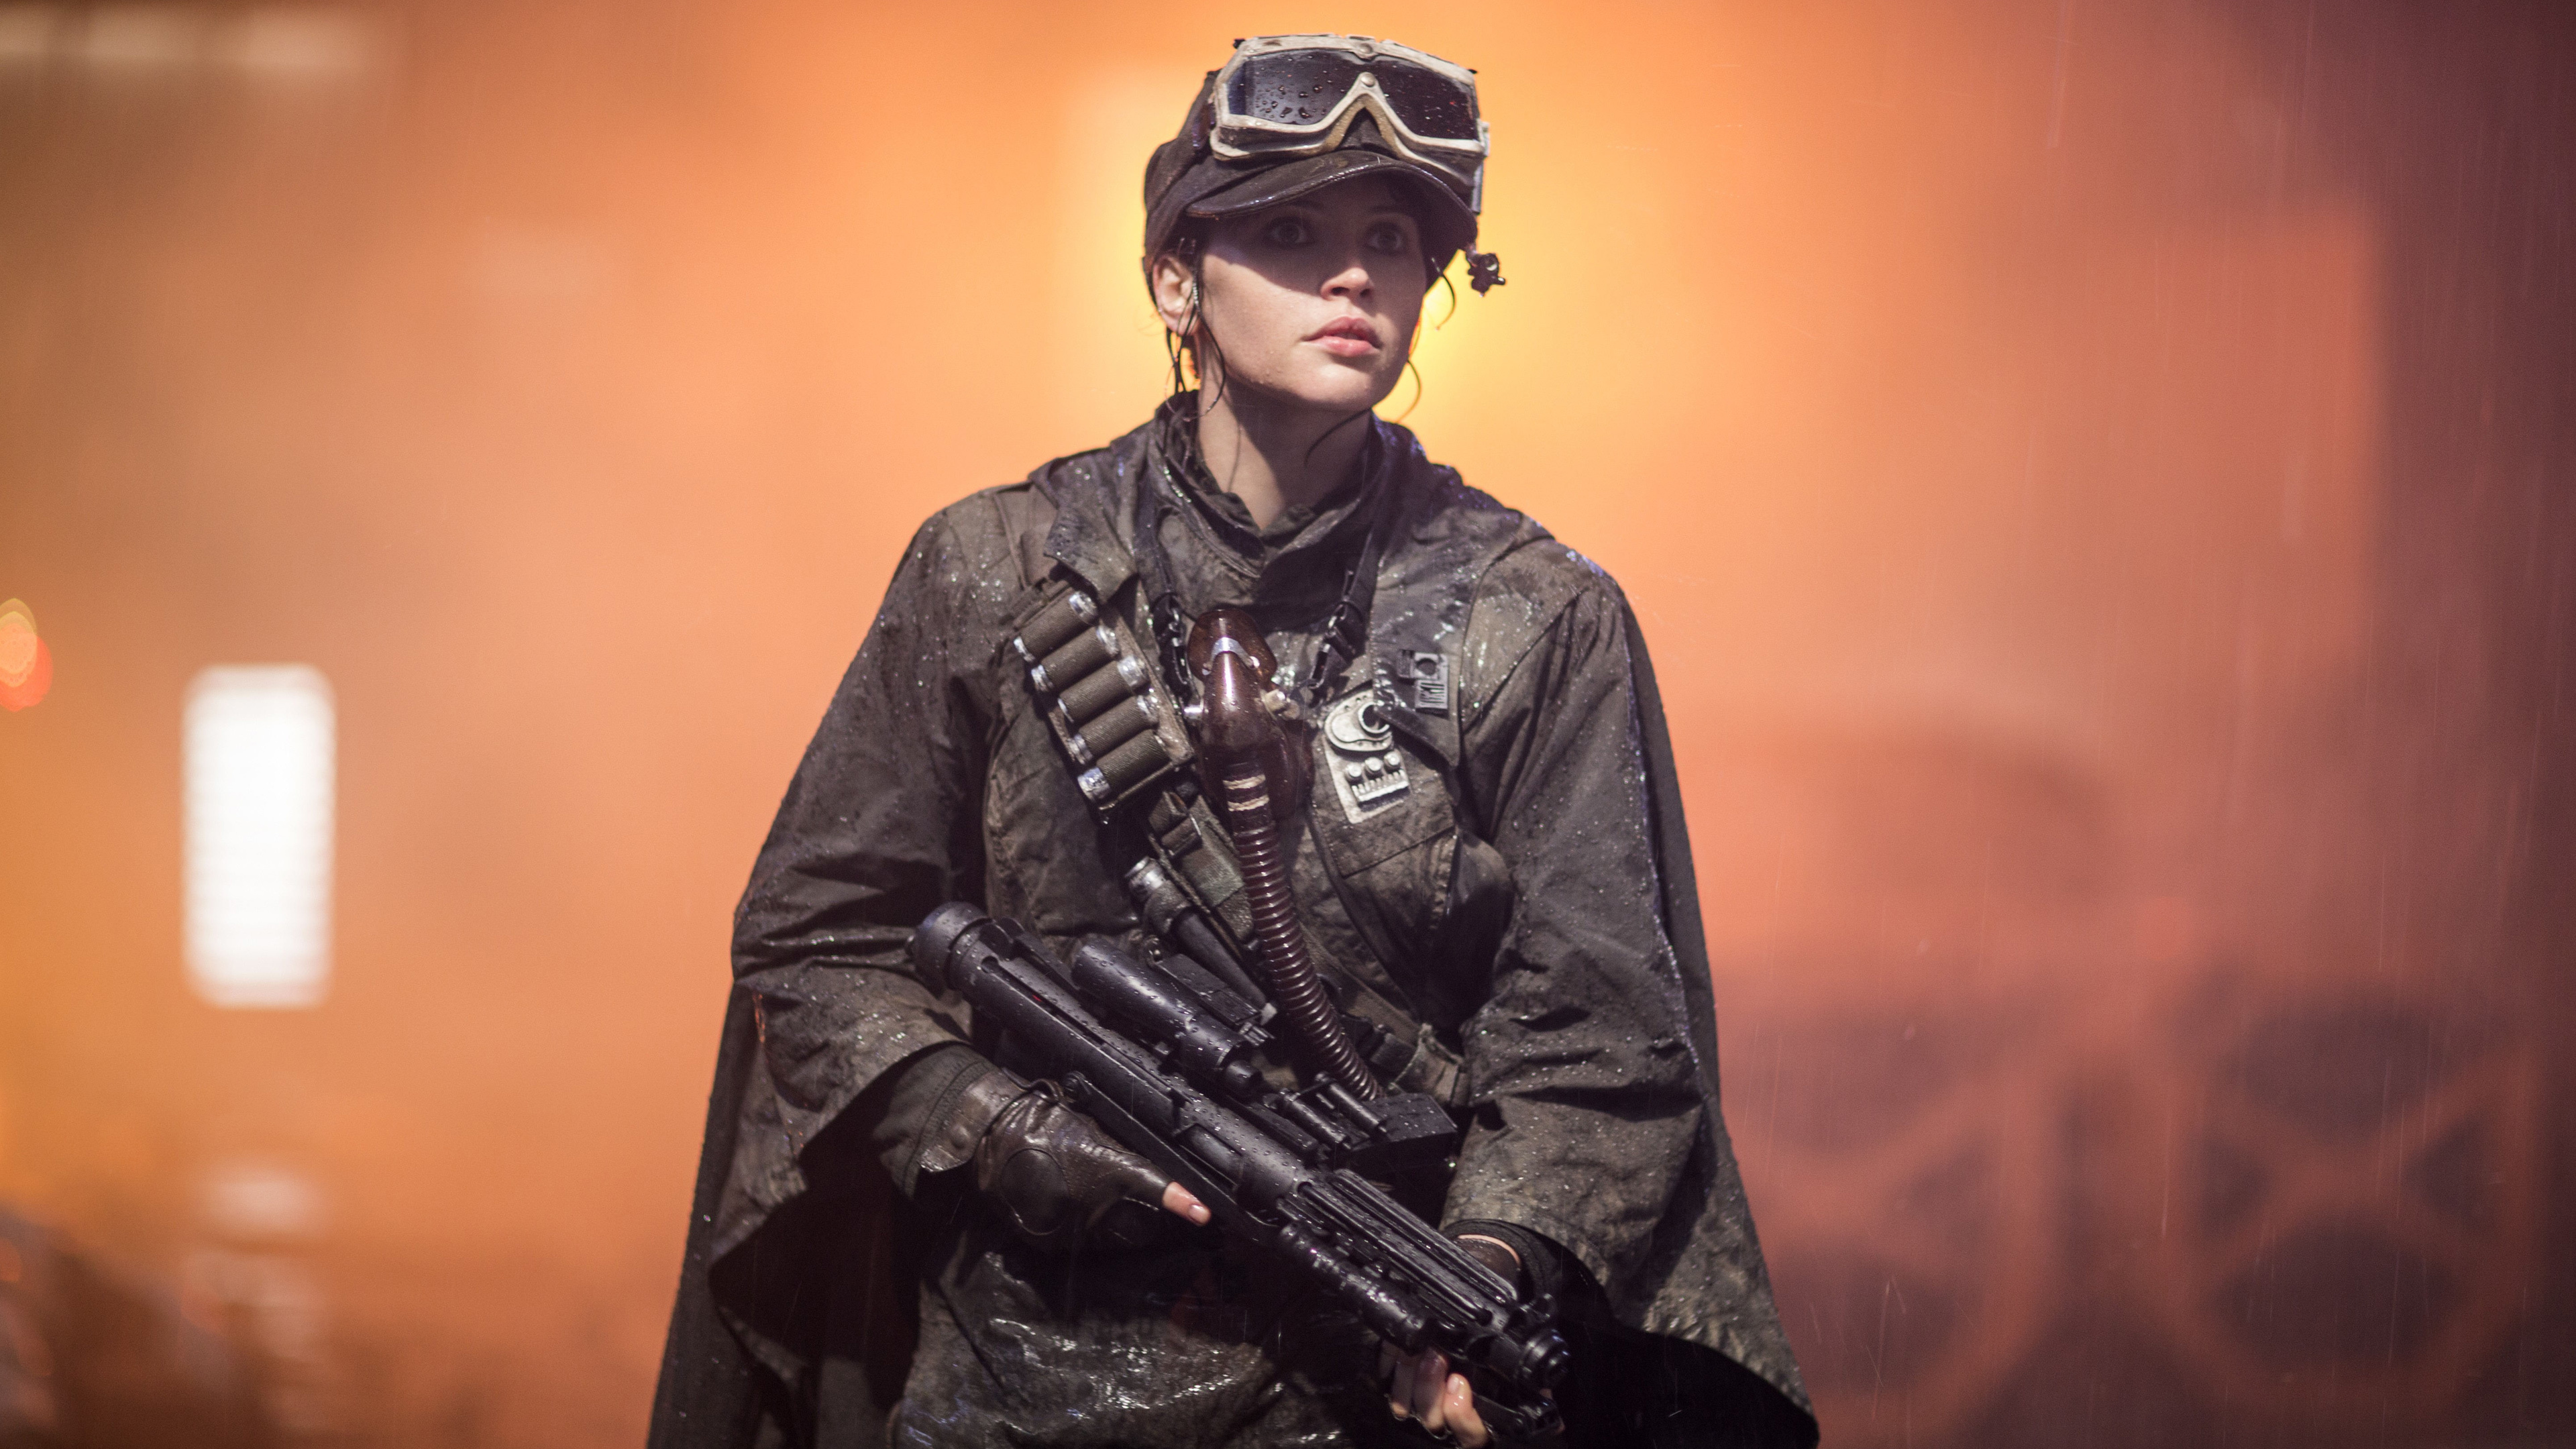 felicity jones rogue one a star wars story 1536400352 - Felicity Jones Rogue One A Star Wars Story - star wars wallpapers, rogue one a star wars story wallpapers, movies wallpapers, felicity jones wallpapers, 2016 movies wallpapers